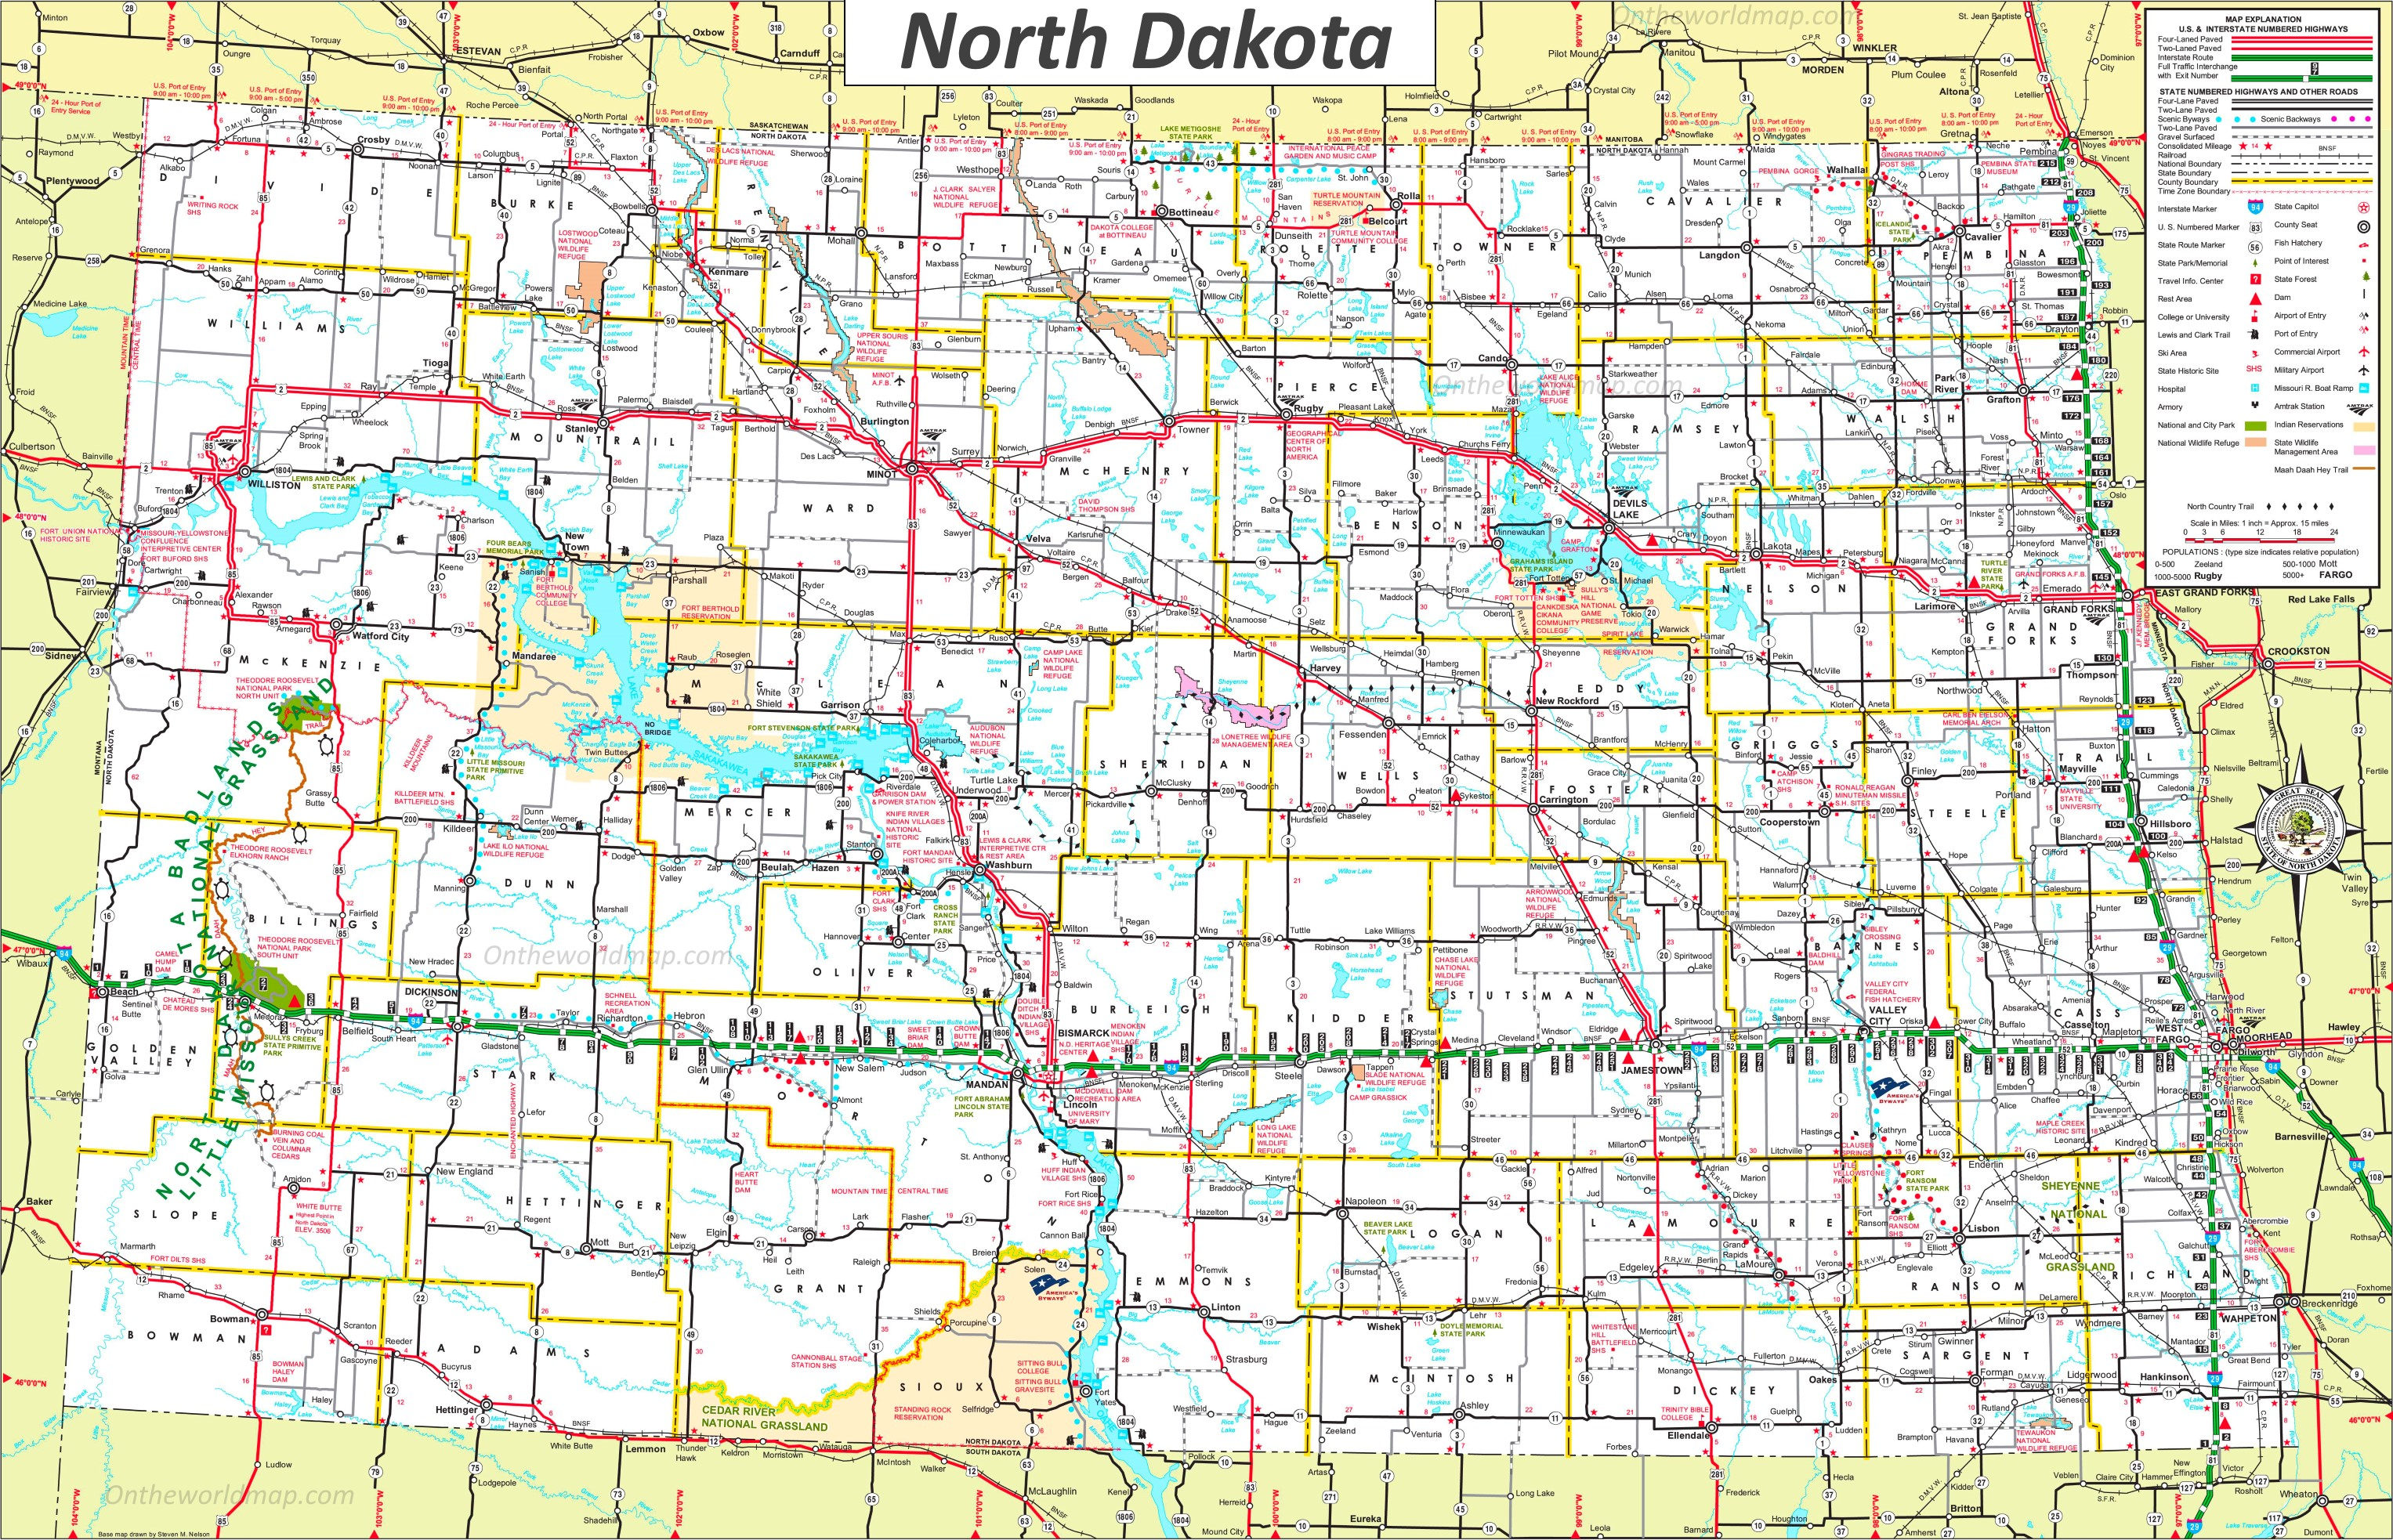 North Dakota State Maps | USA | Maps of North Dakota (ND) on